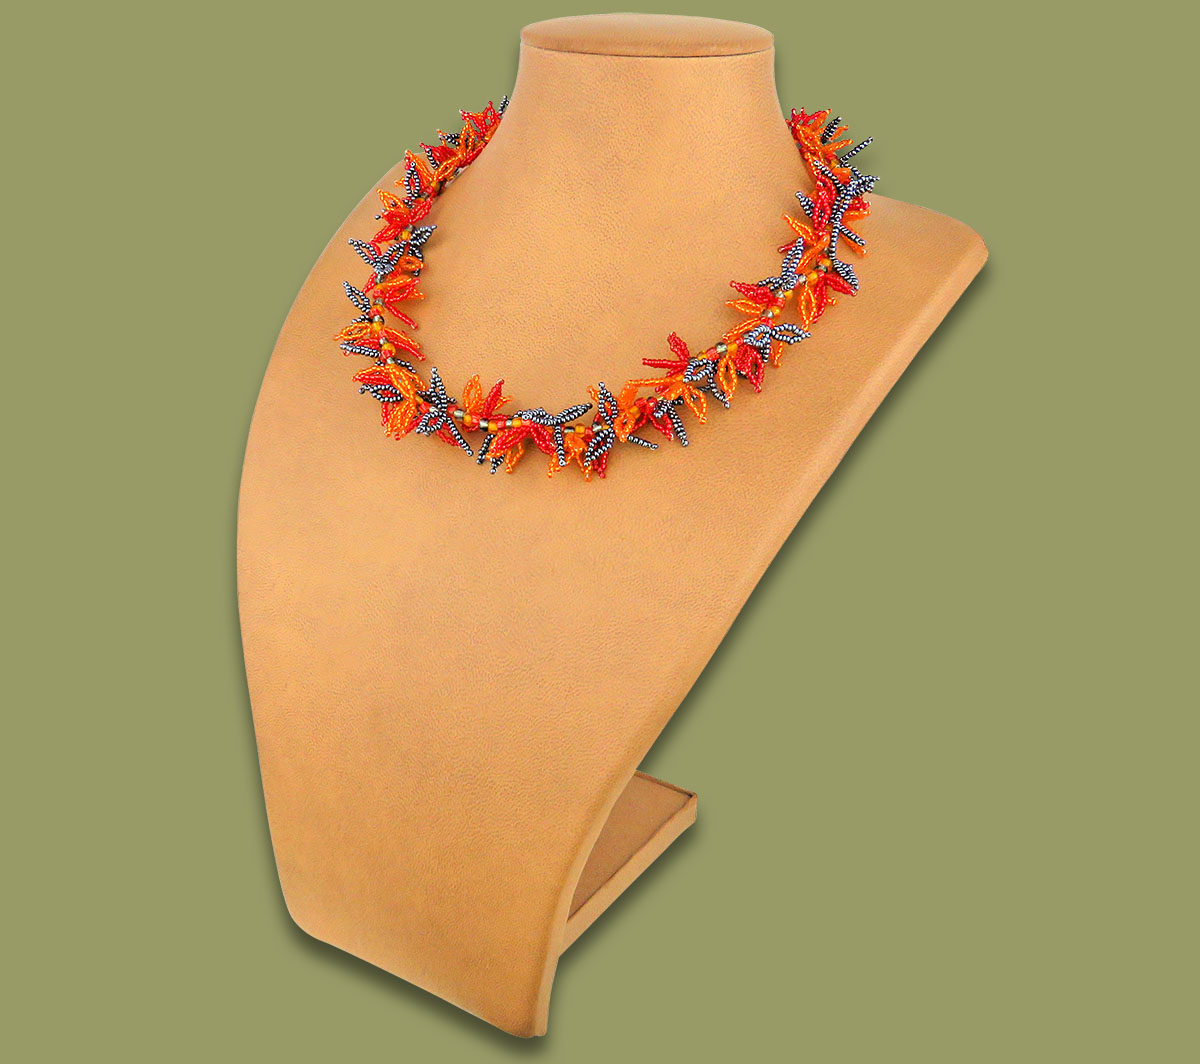 African Beaded Necklace Moyo Red Orange Metallic